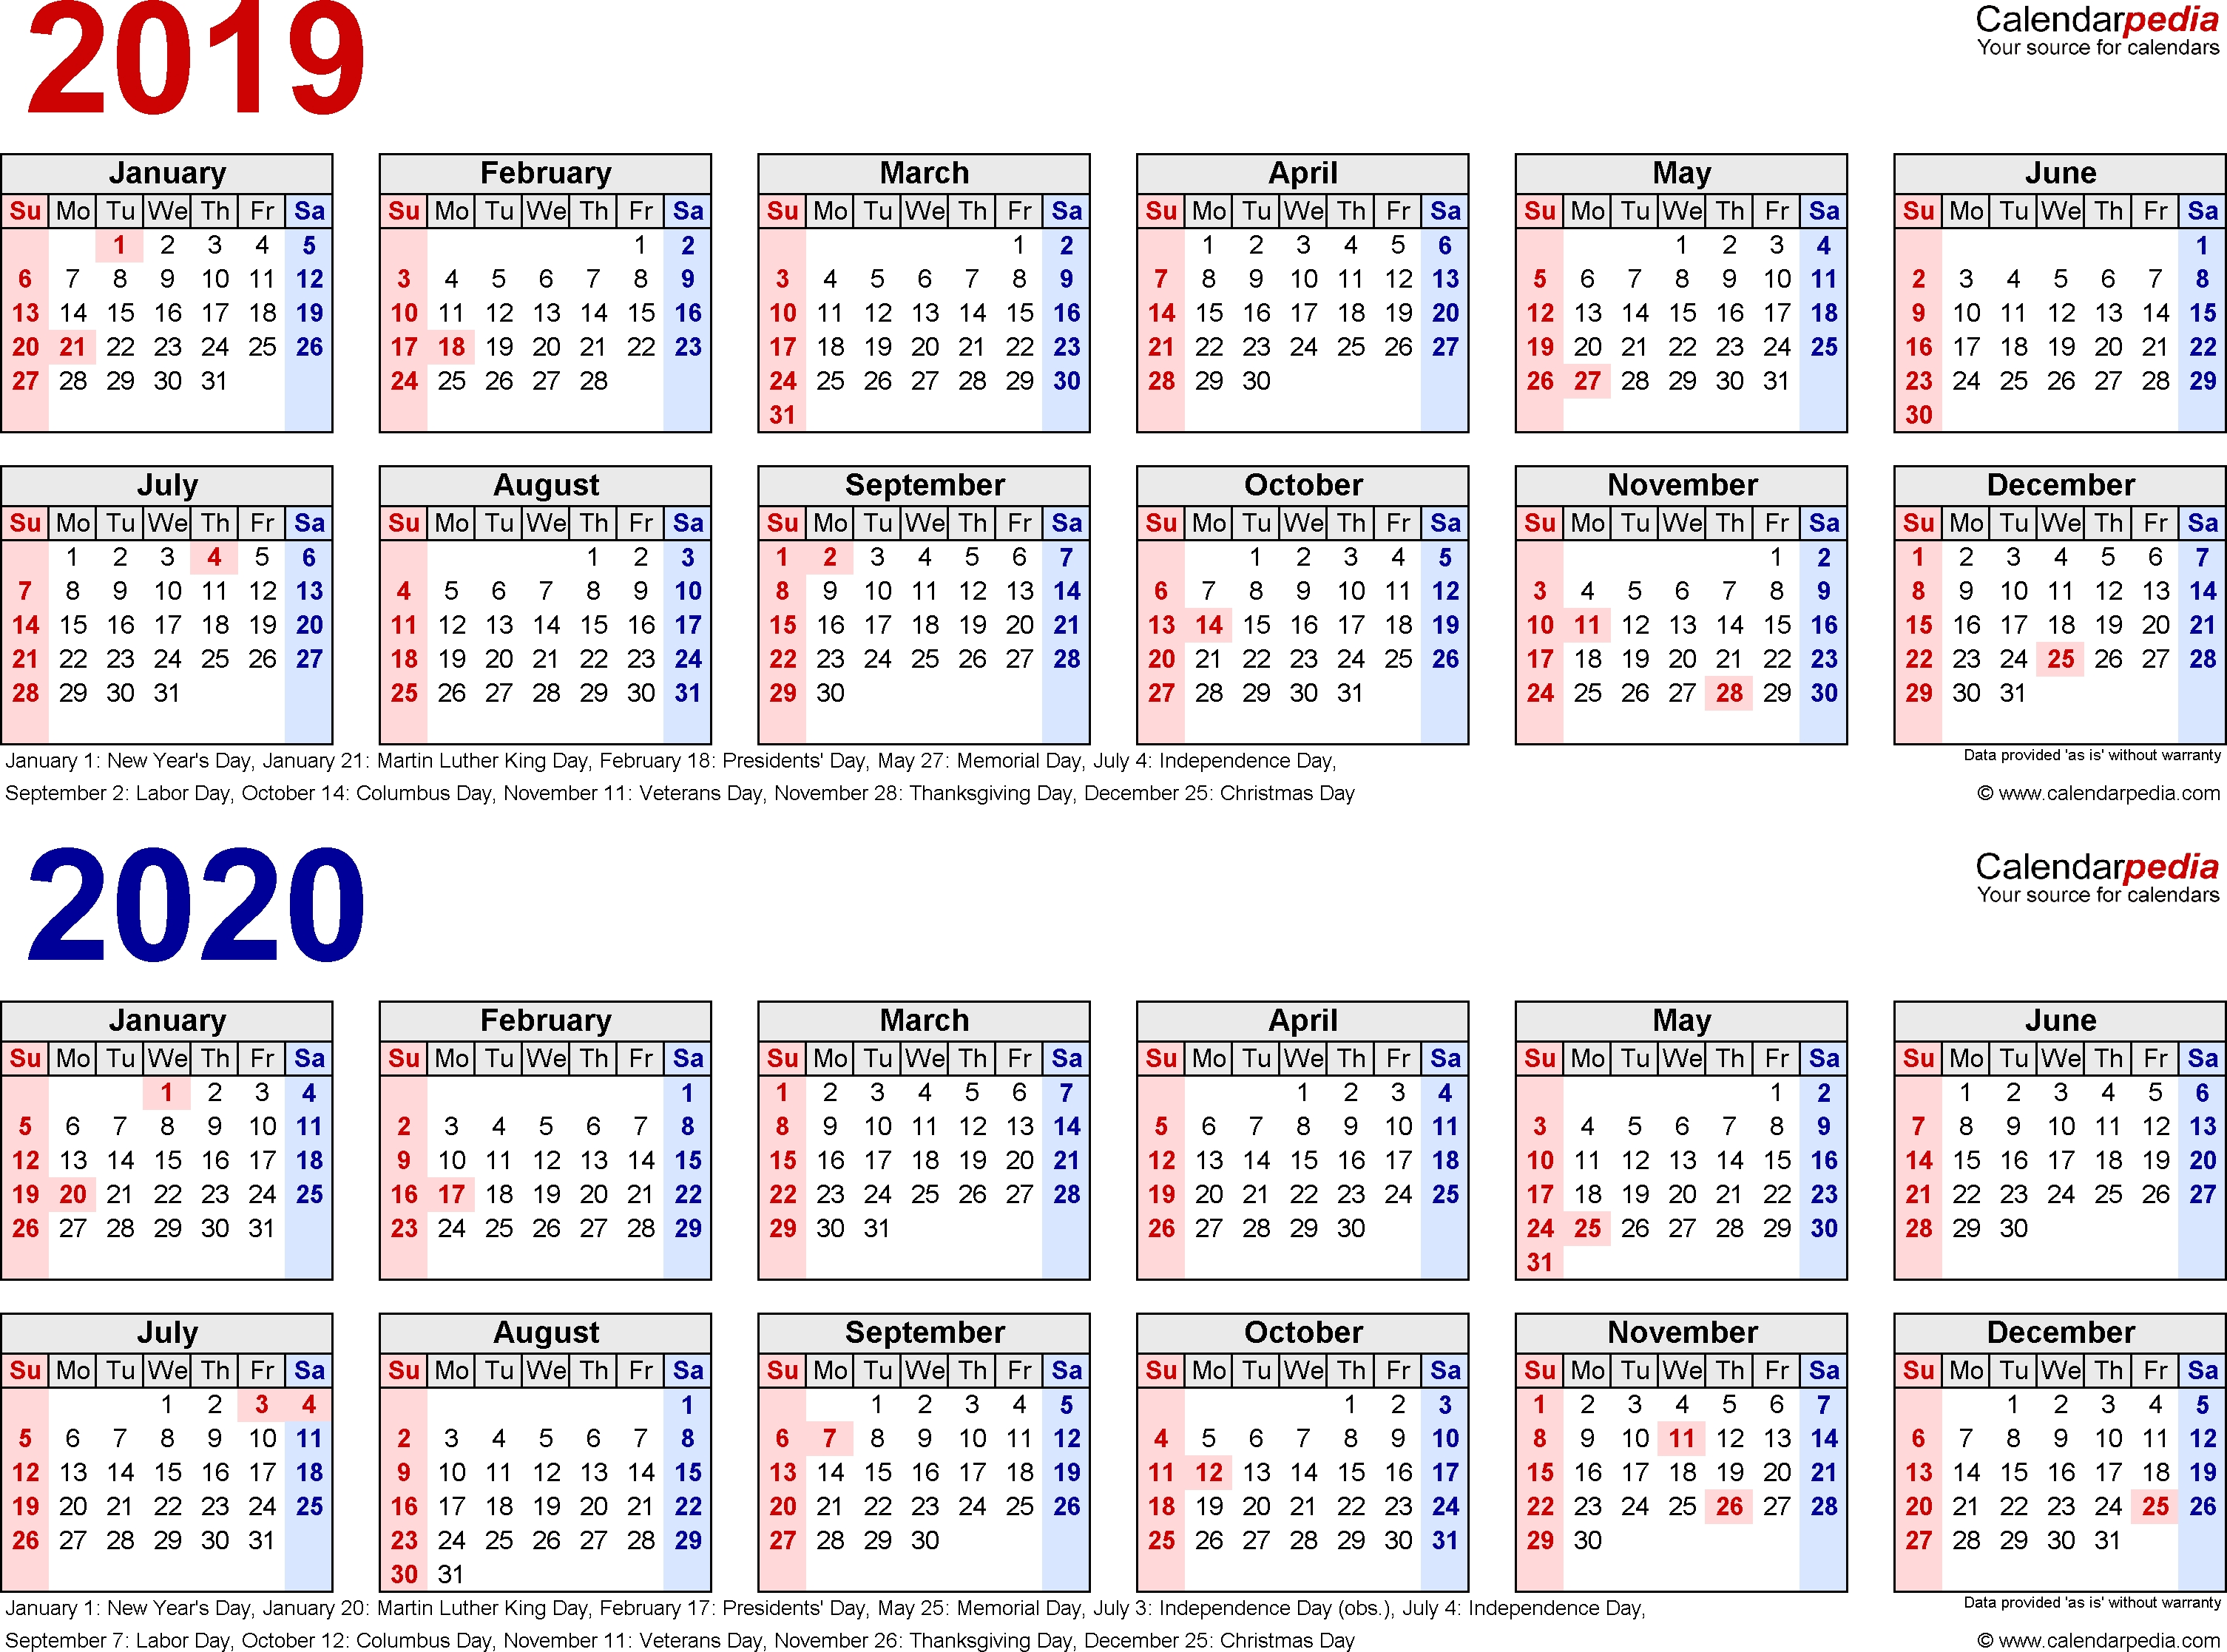 2019-2020 Two Year Calendar - Free Printable Microsoft Word with regard to Yearly Calendar In One Page 2019-2020